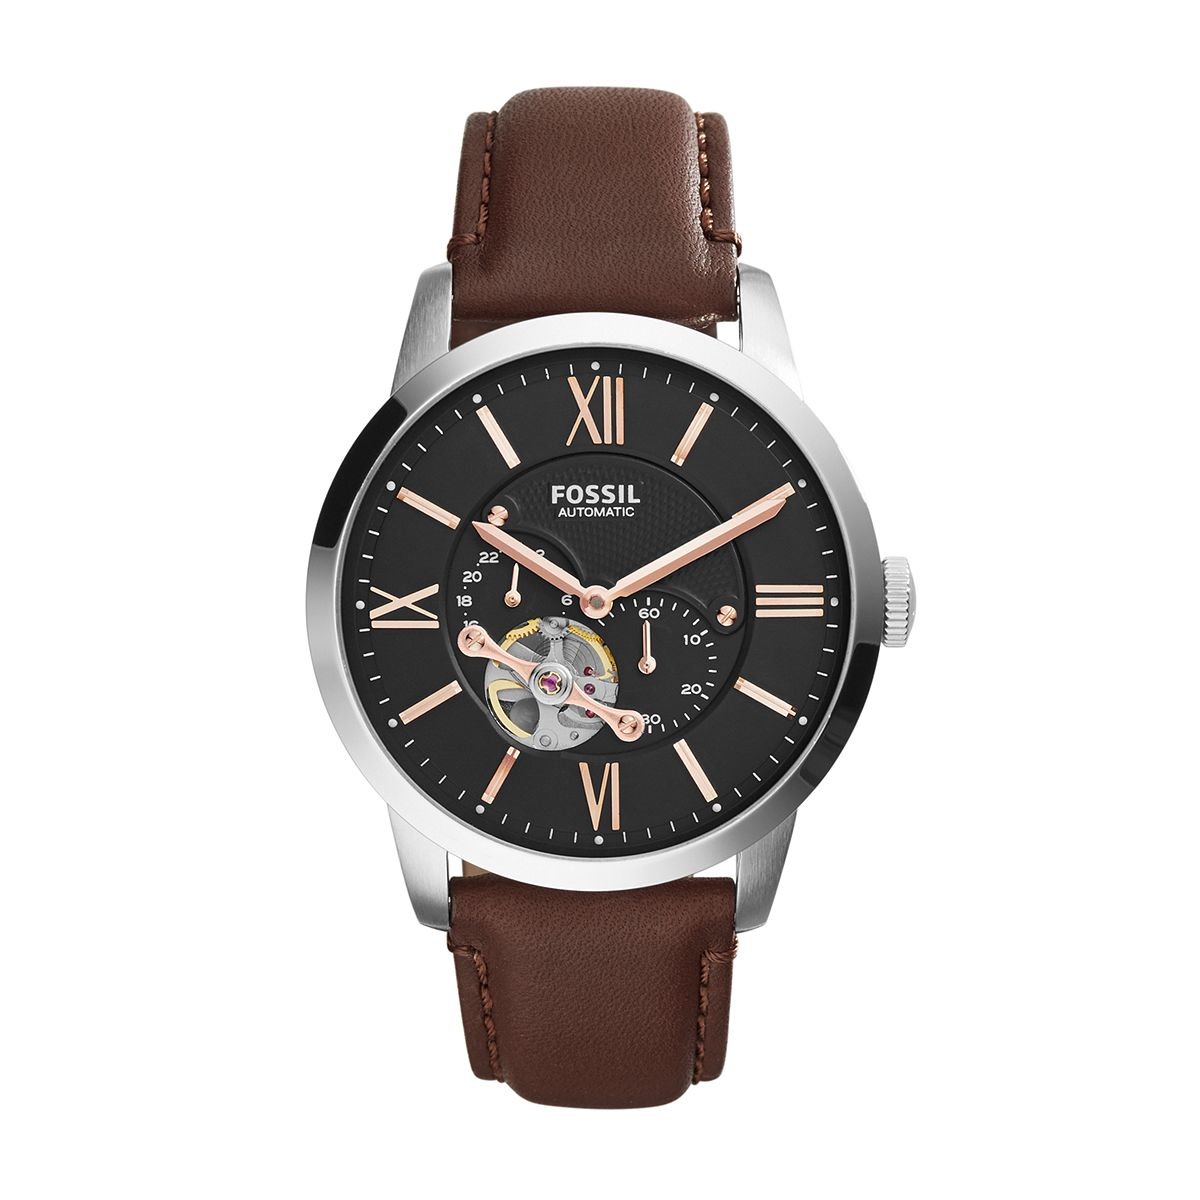 ?Townsman Brown Leather Automatic Watch For Men / Promotional pr